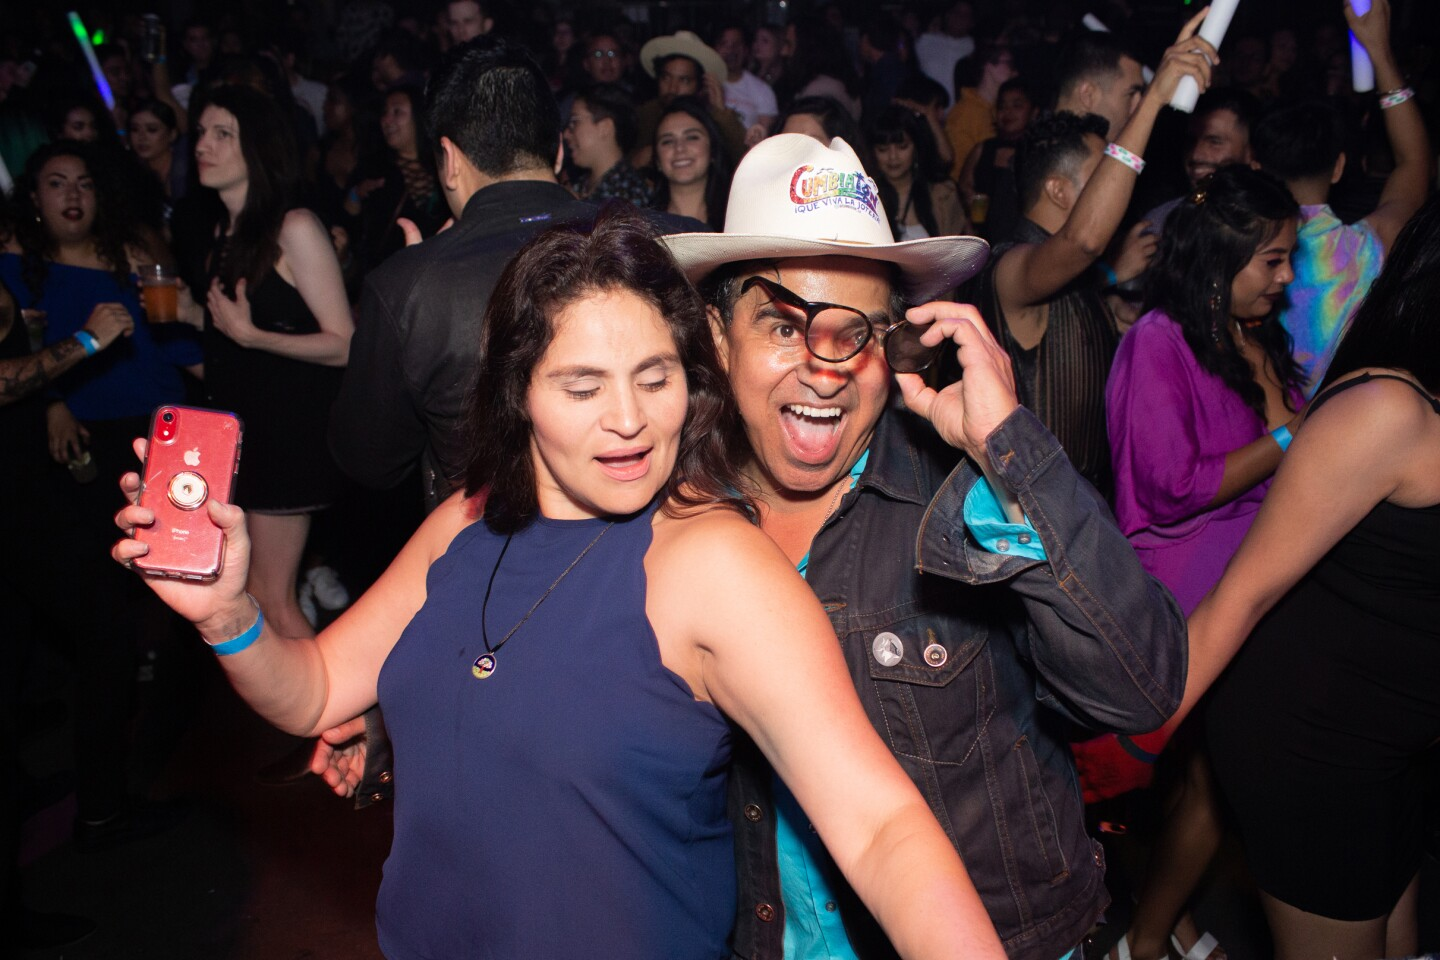 A woman in a purple top and a man in a cowboy hat dance at Cumbiatón